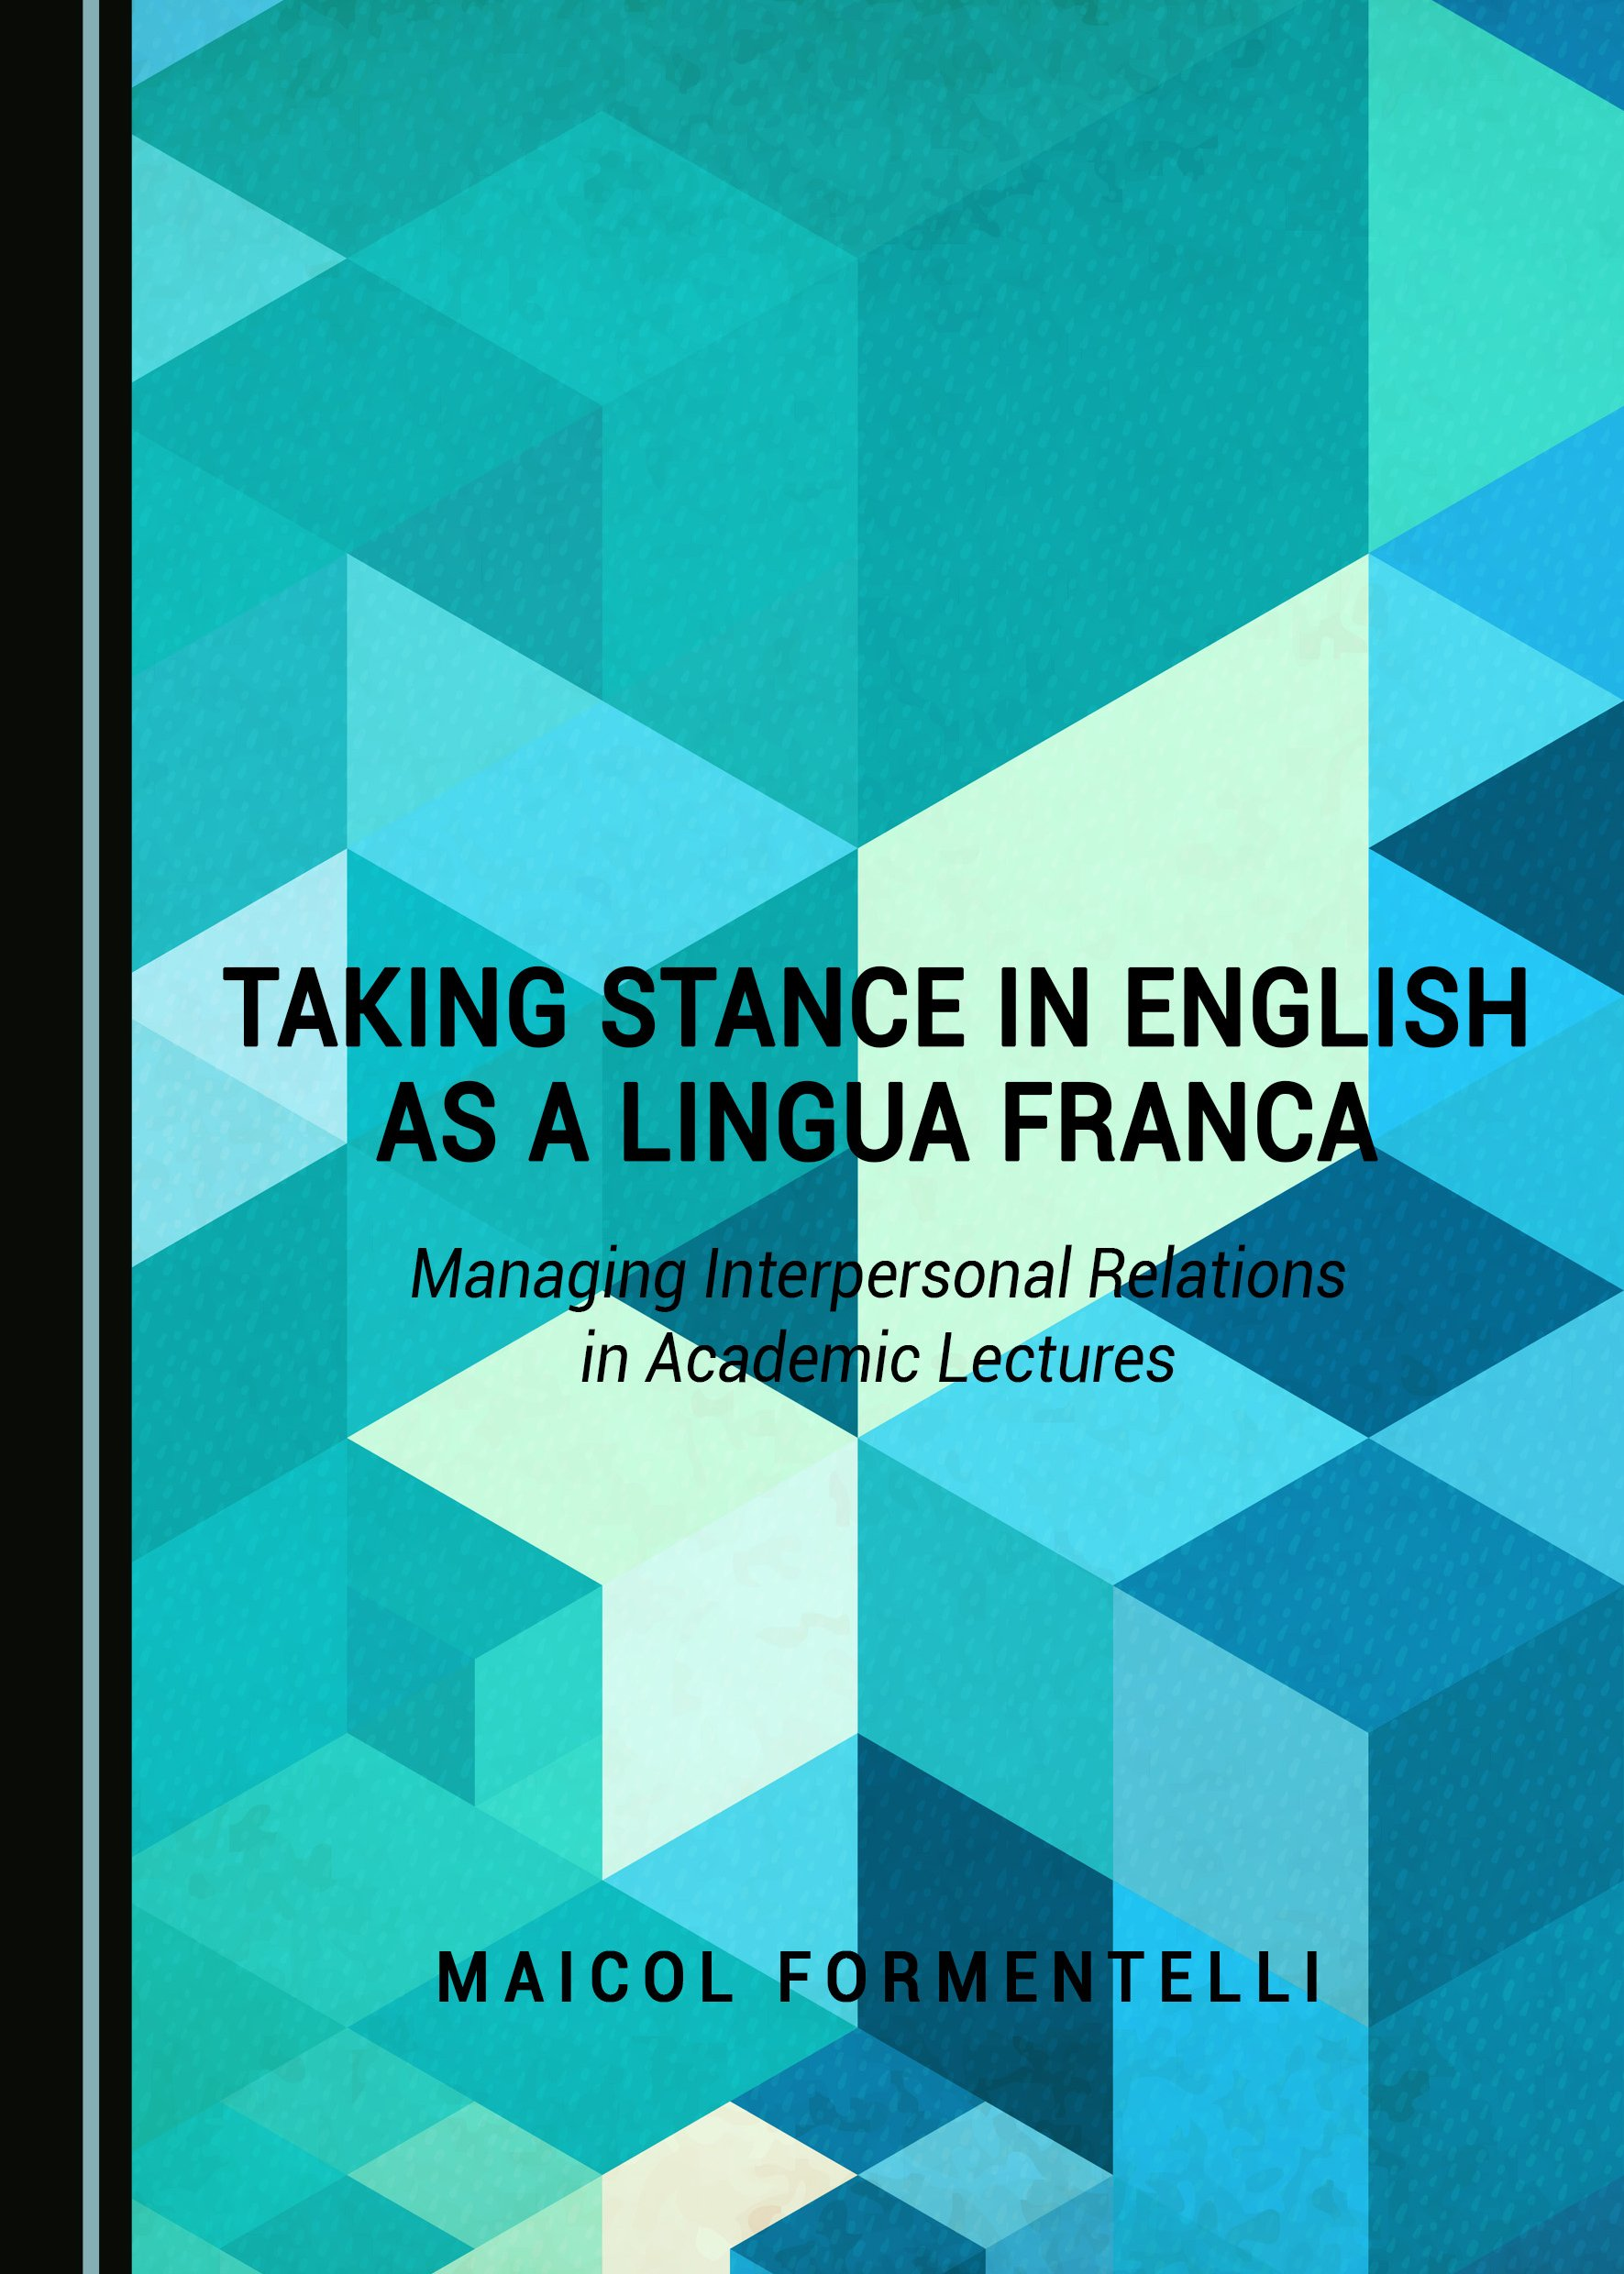 Taking Stance in English as a Lingua Franca: Managing Interpersonal Relations in Academic Lectures